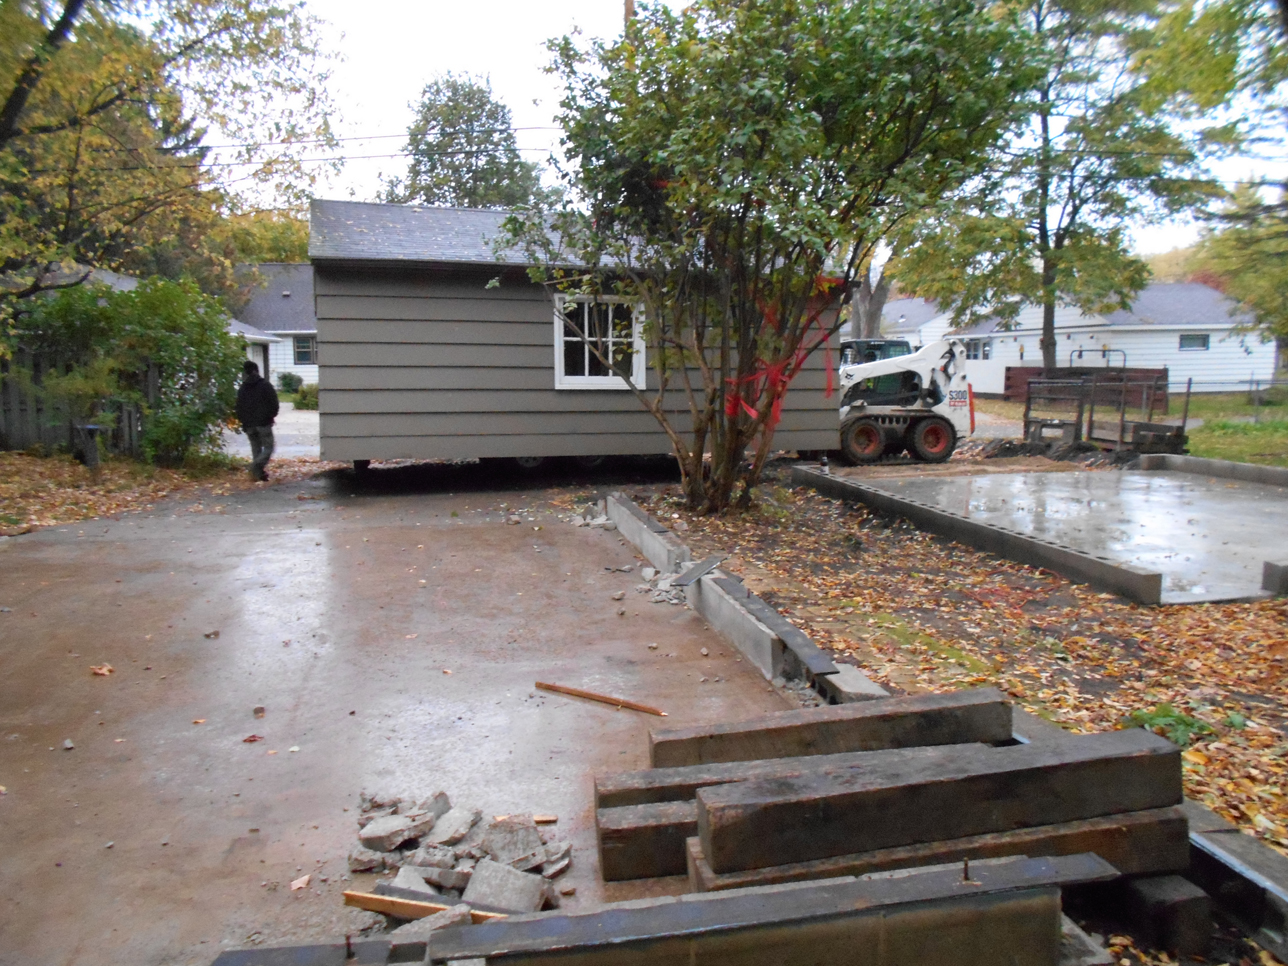 1950s garage being moved to another location on the Johnson family property in St. Cloud, MN, October 2013. The garage was moved by Ehrlichmann Structural Movers based out of Royalton, MN.